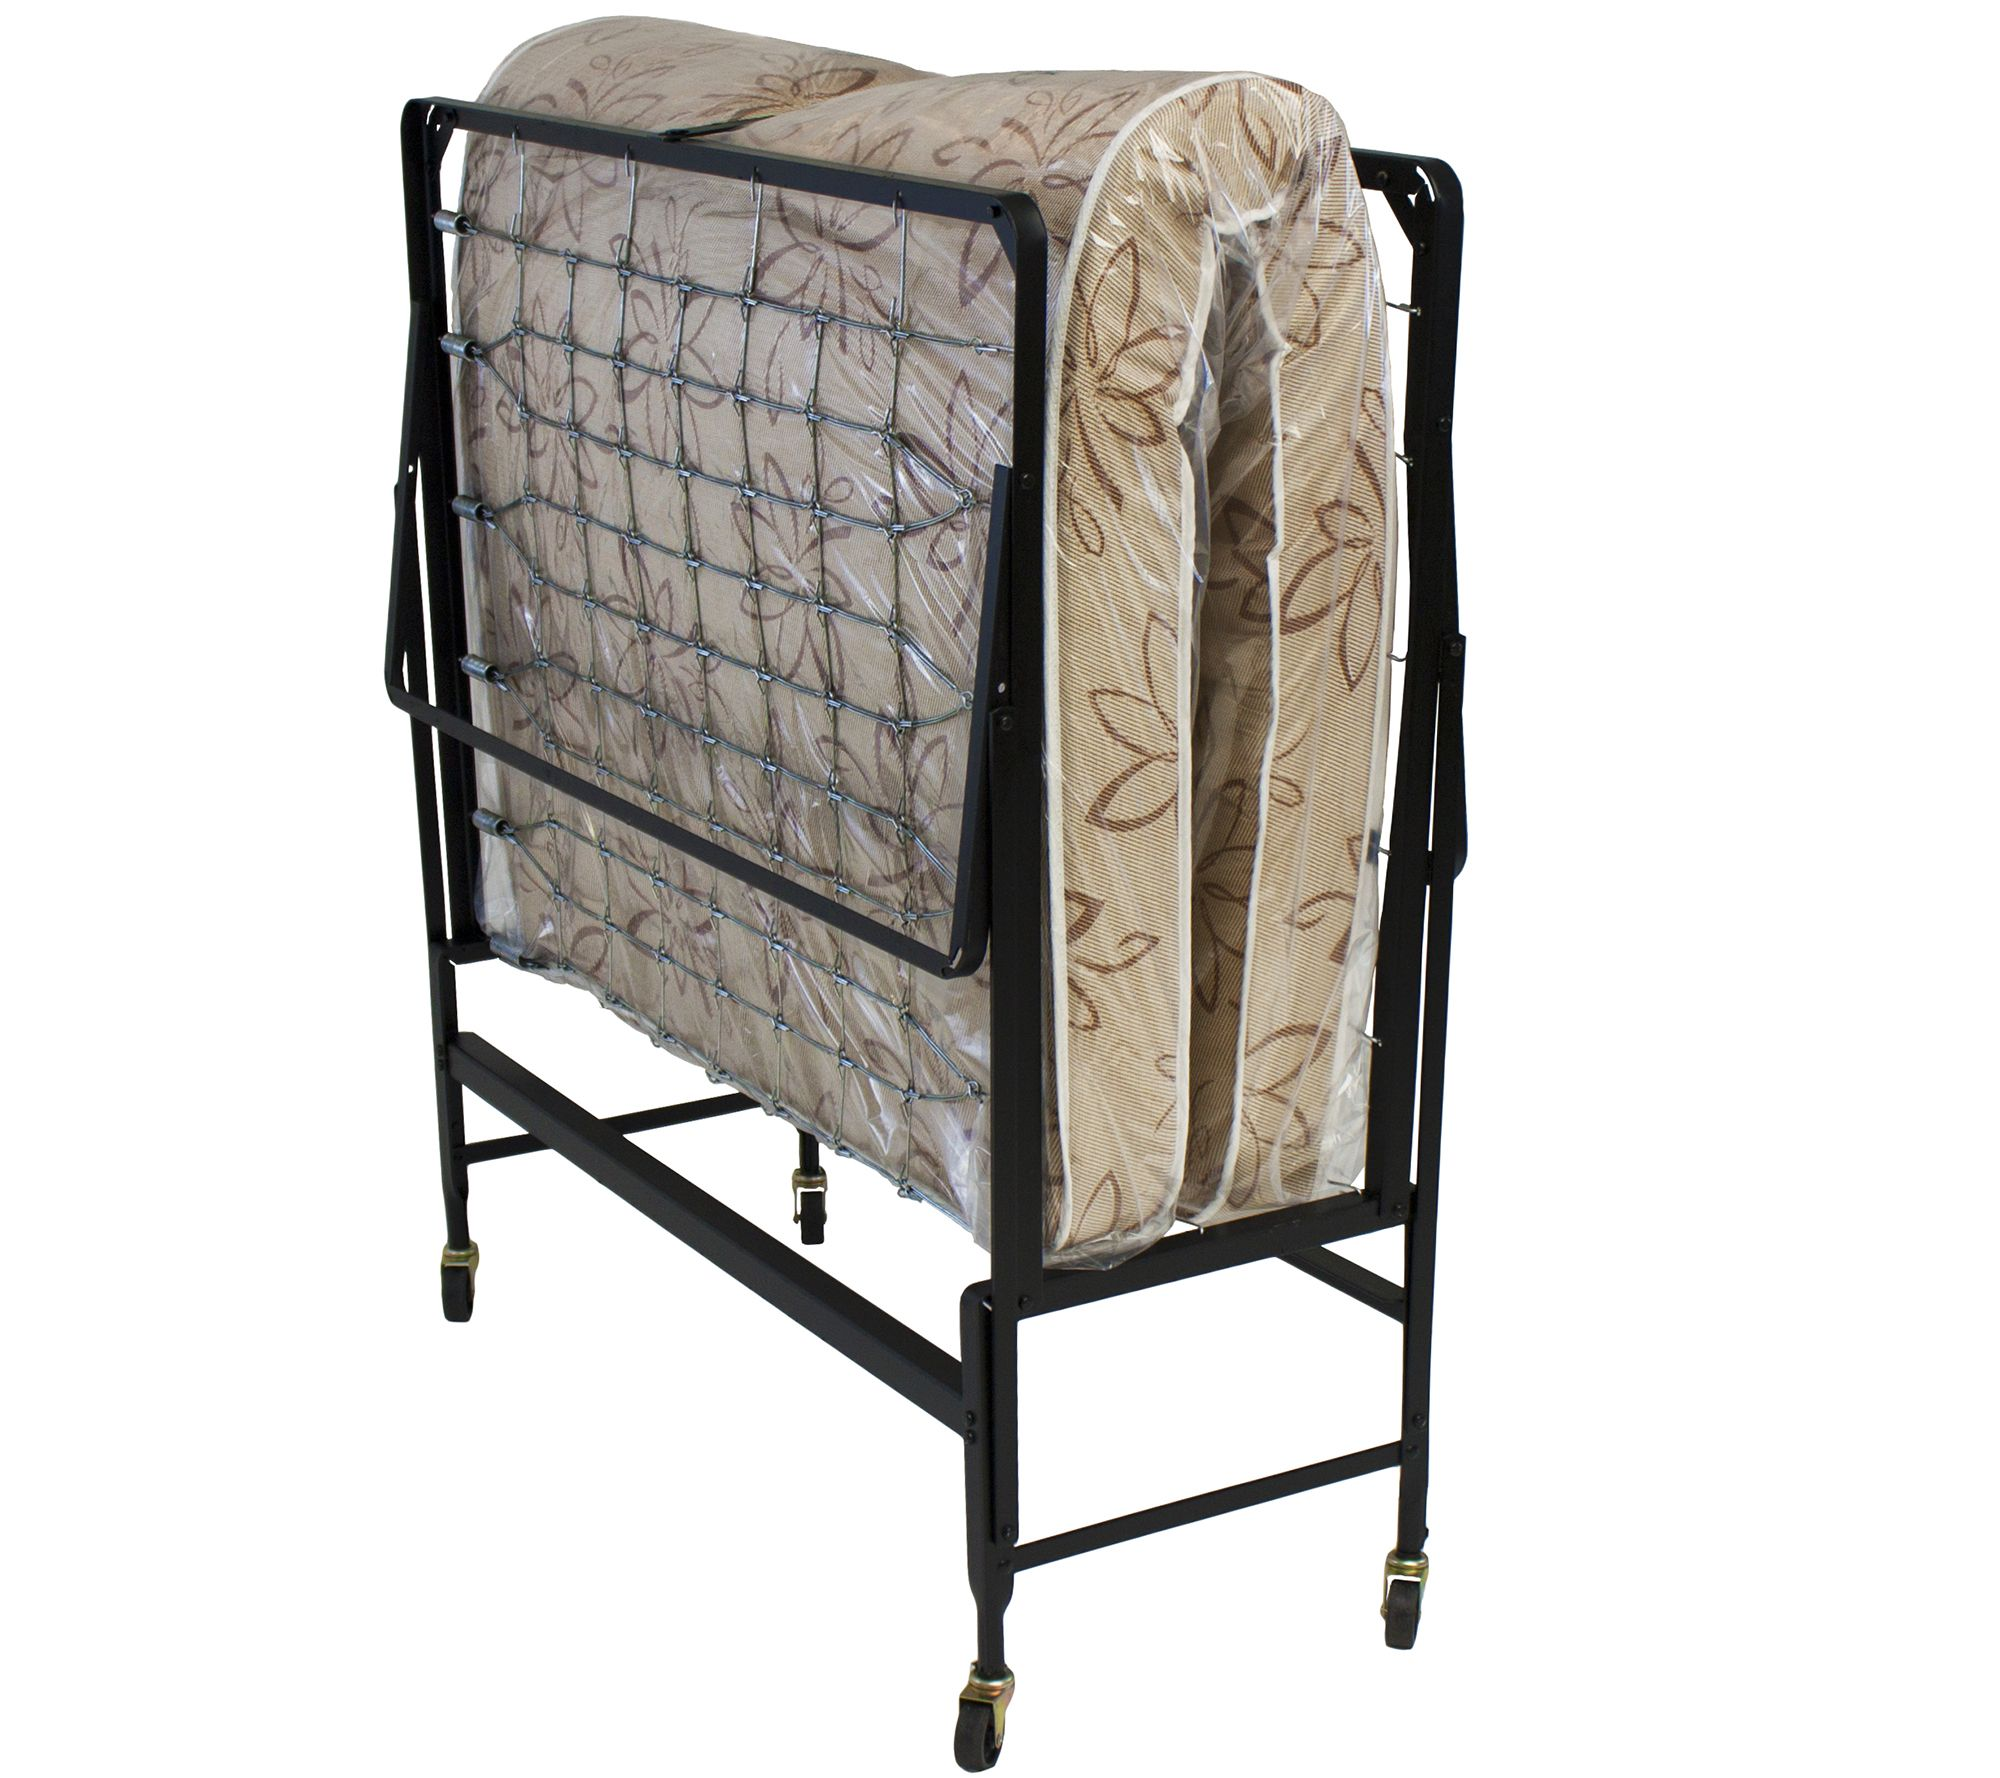 Serta Twin Size Rollaway Bed with Fiber Mattress  QVC.com